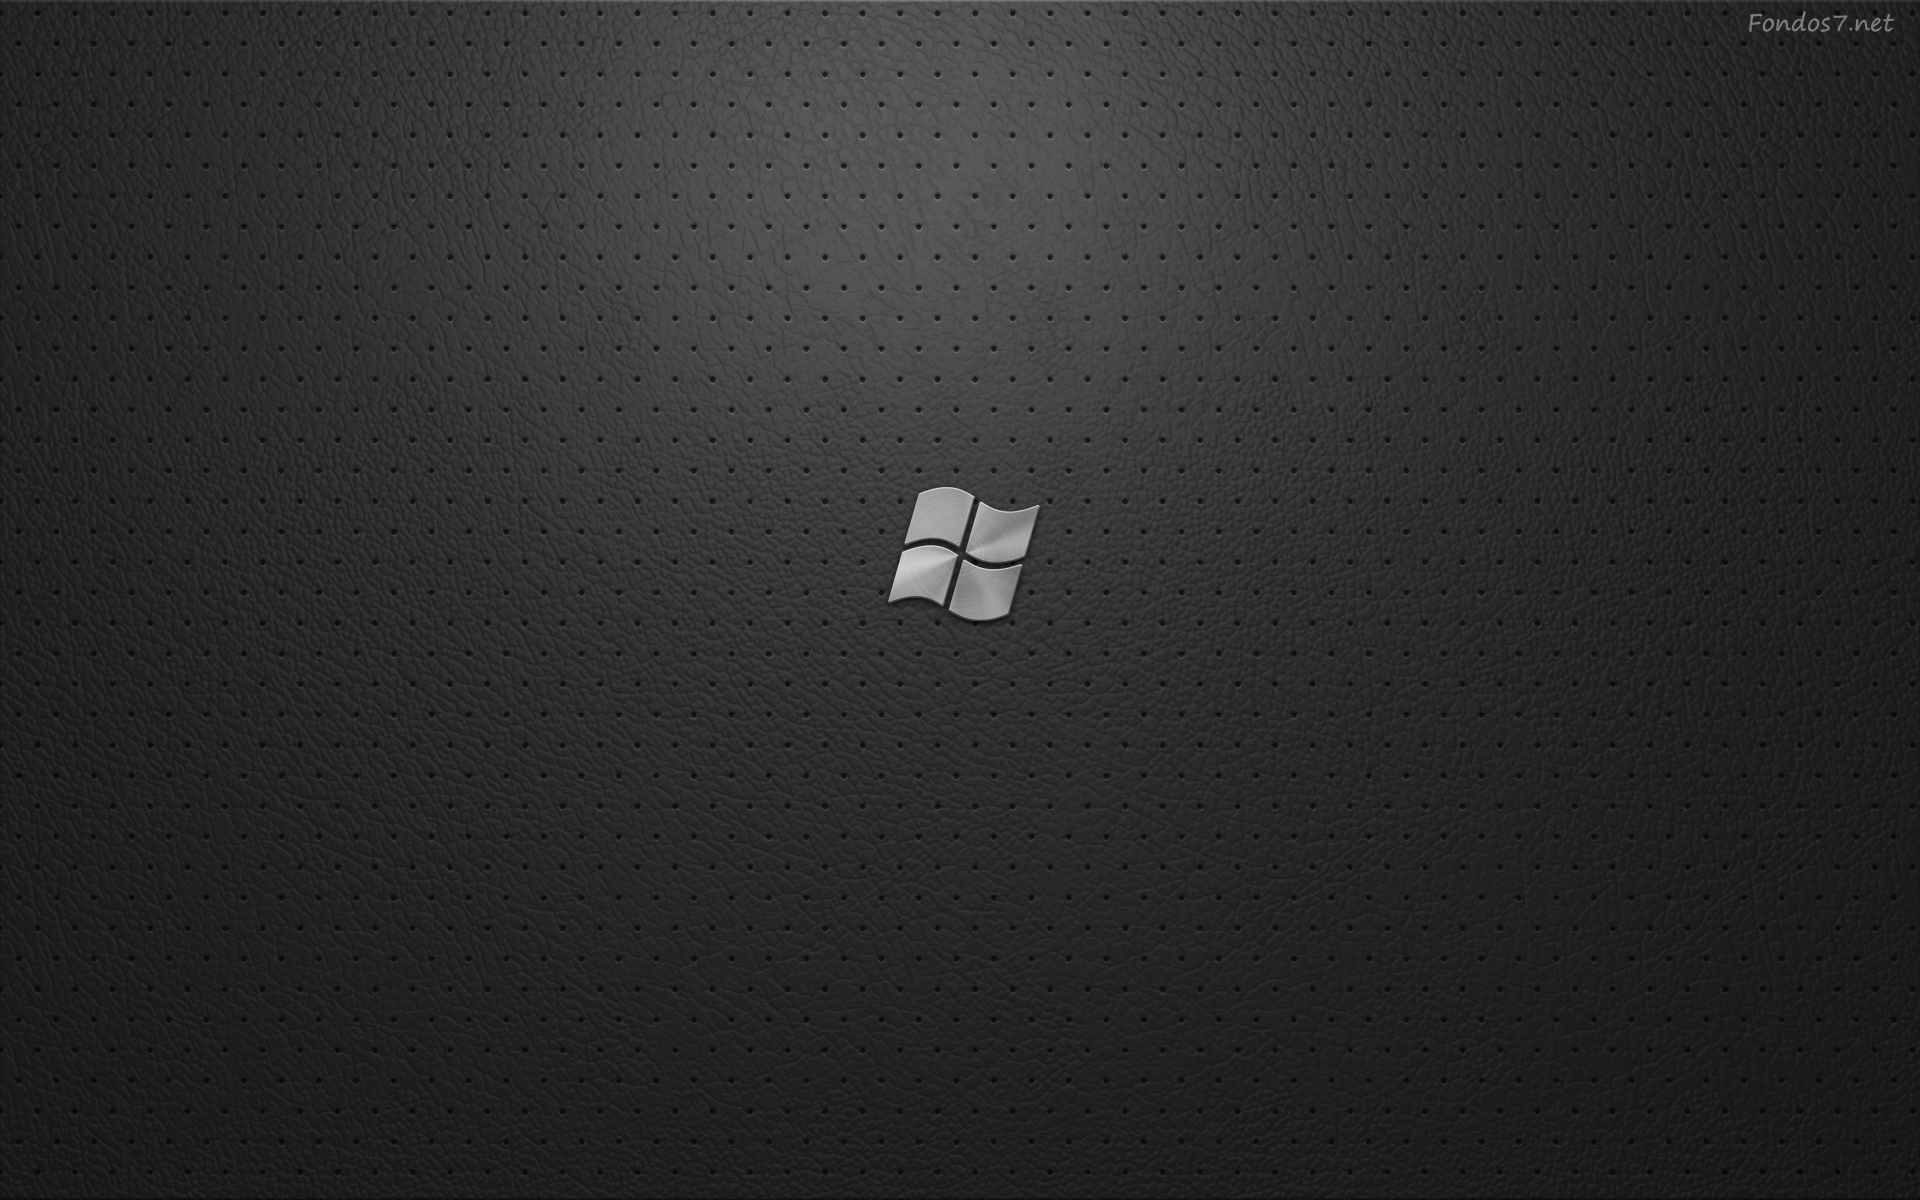 Free Download Descargar Fondos De Pantalla Windows Seven